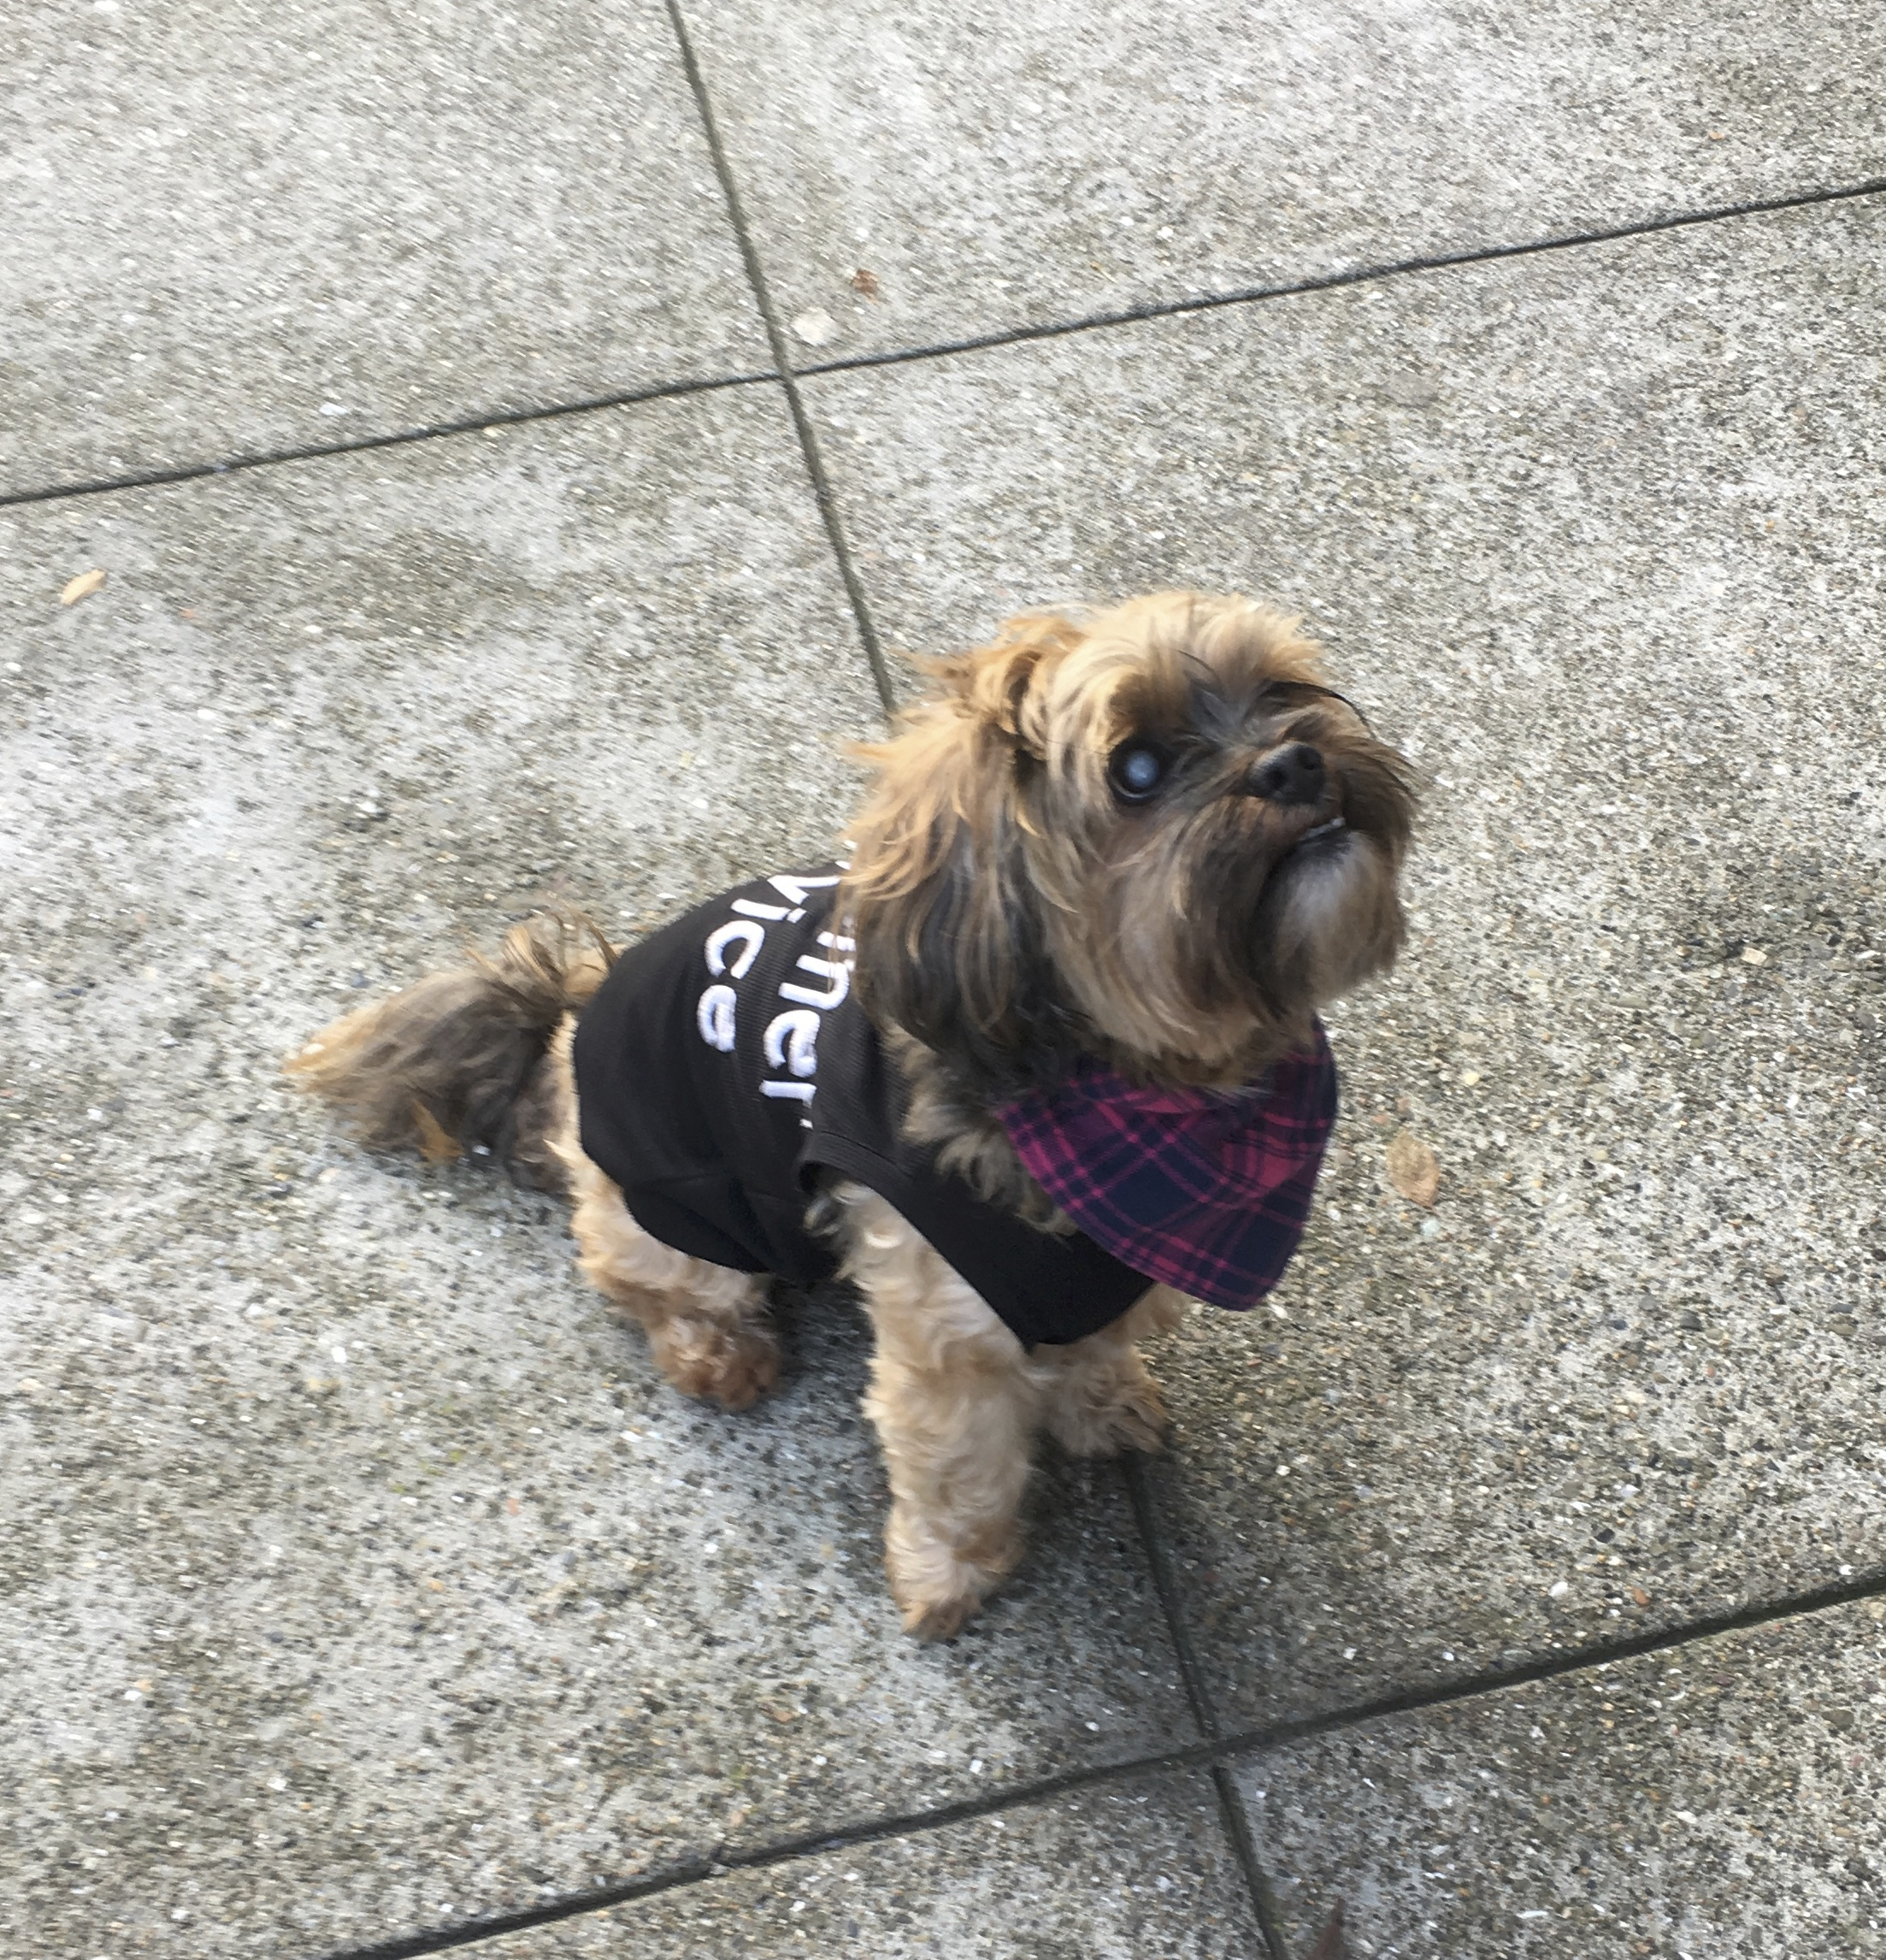 Yorkshire Terrier Shih Tzu Mix Wearing A Shirt That Says Customer Service